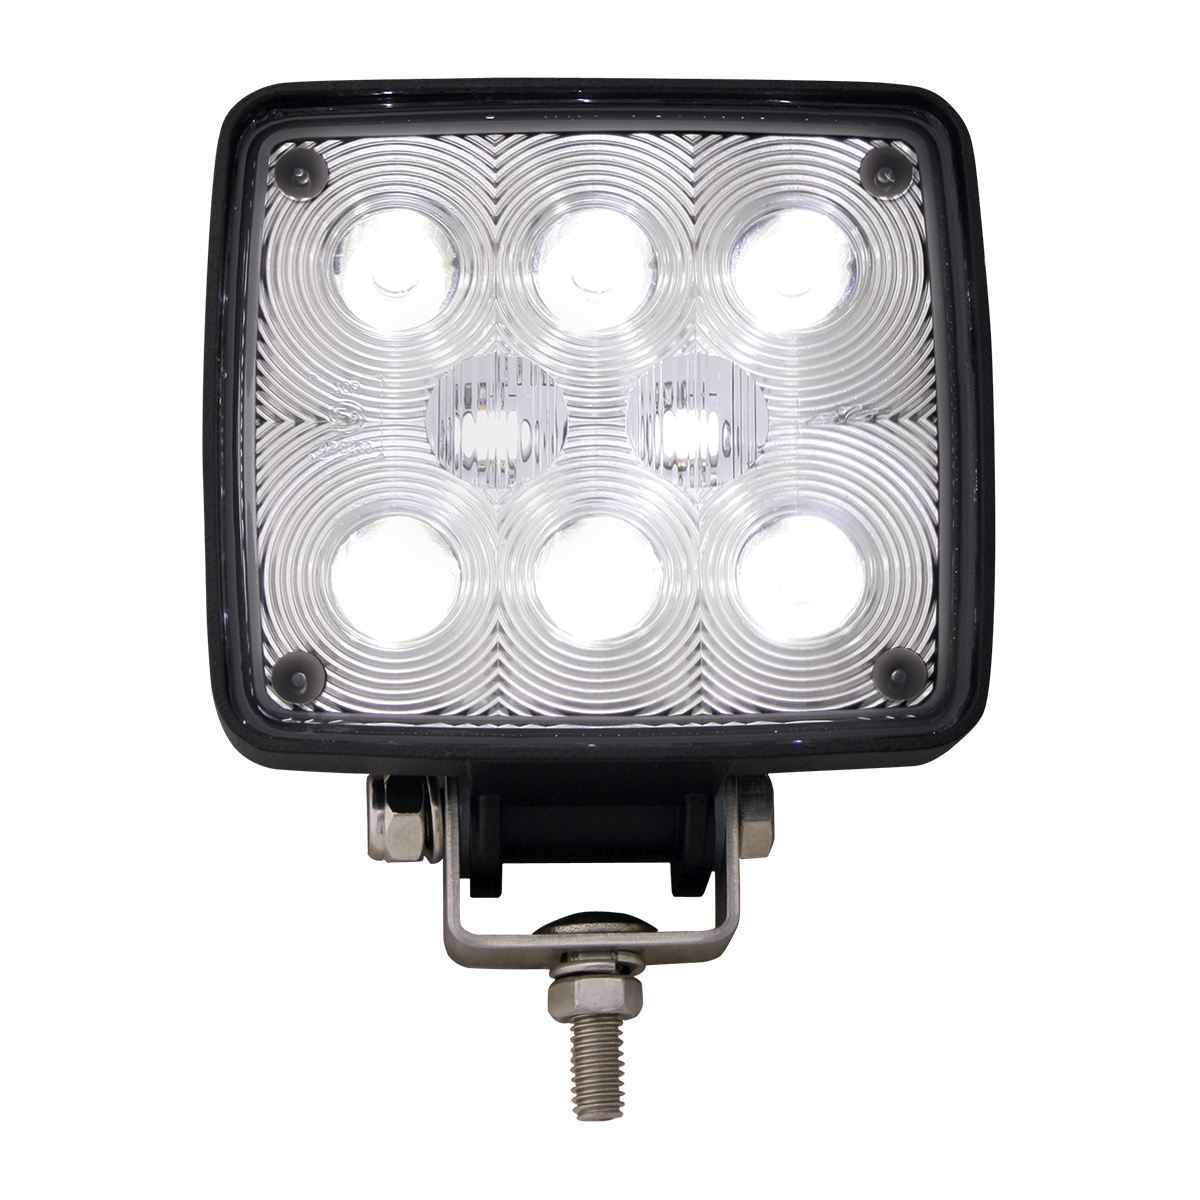 76351 Medium High Power LED Work Light